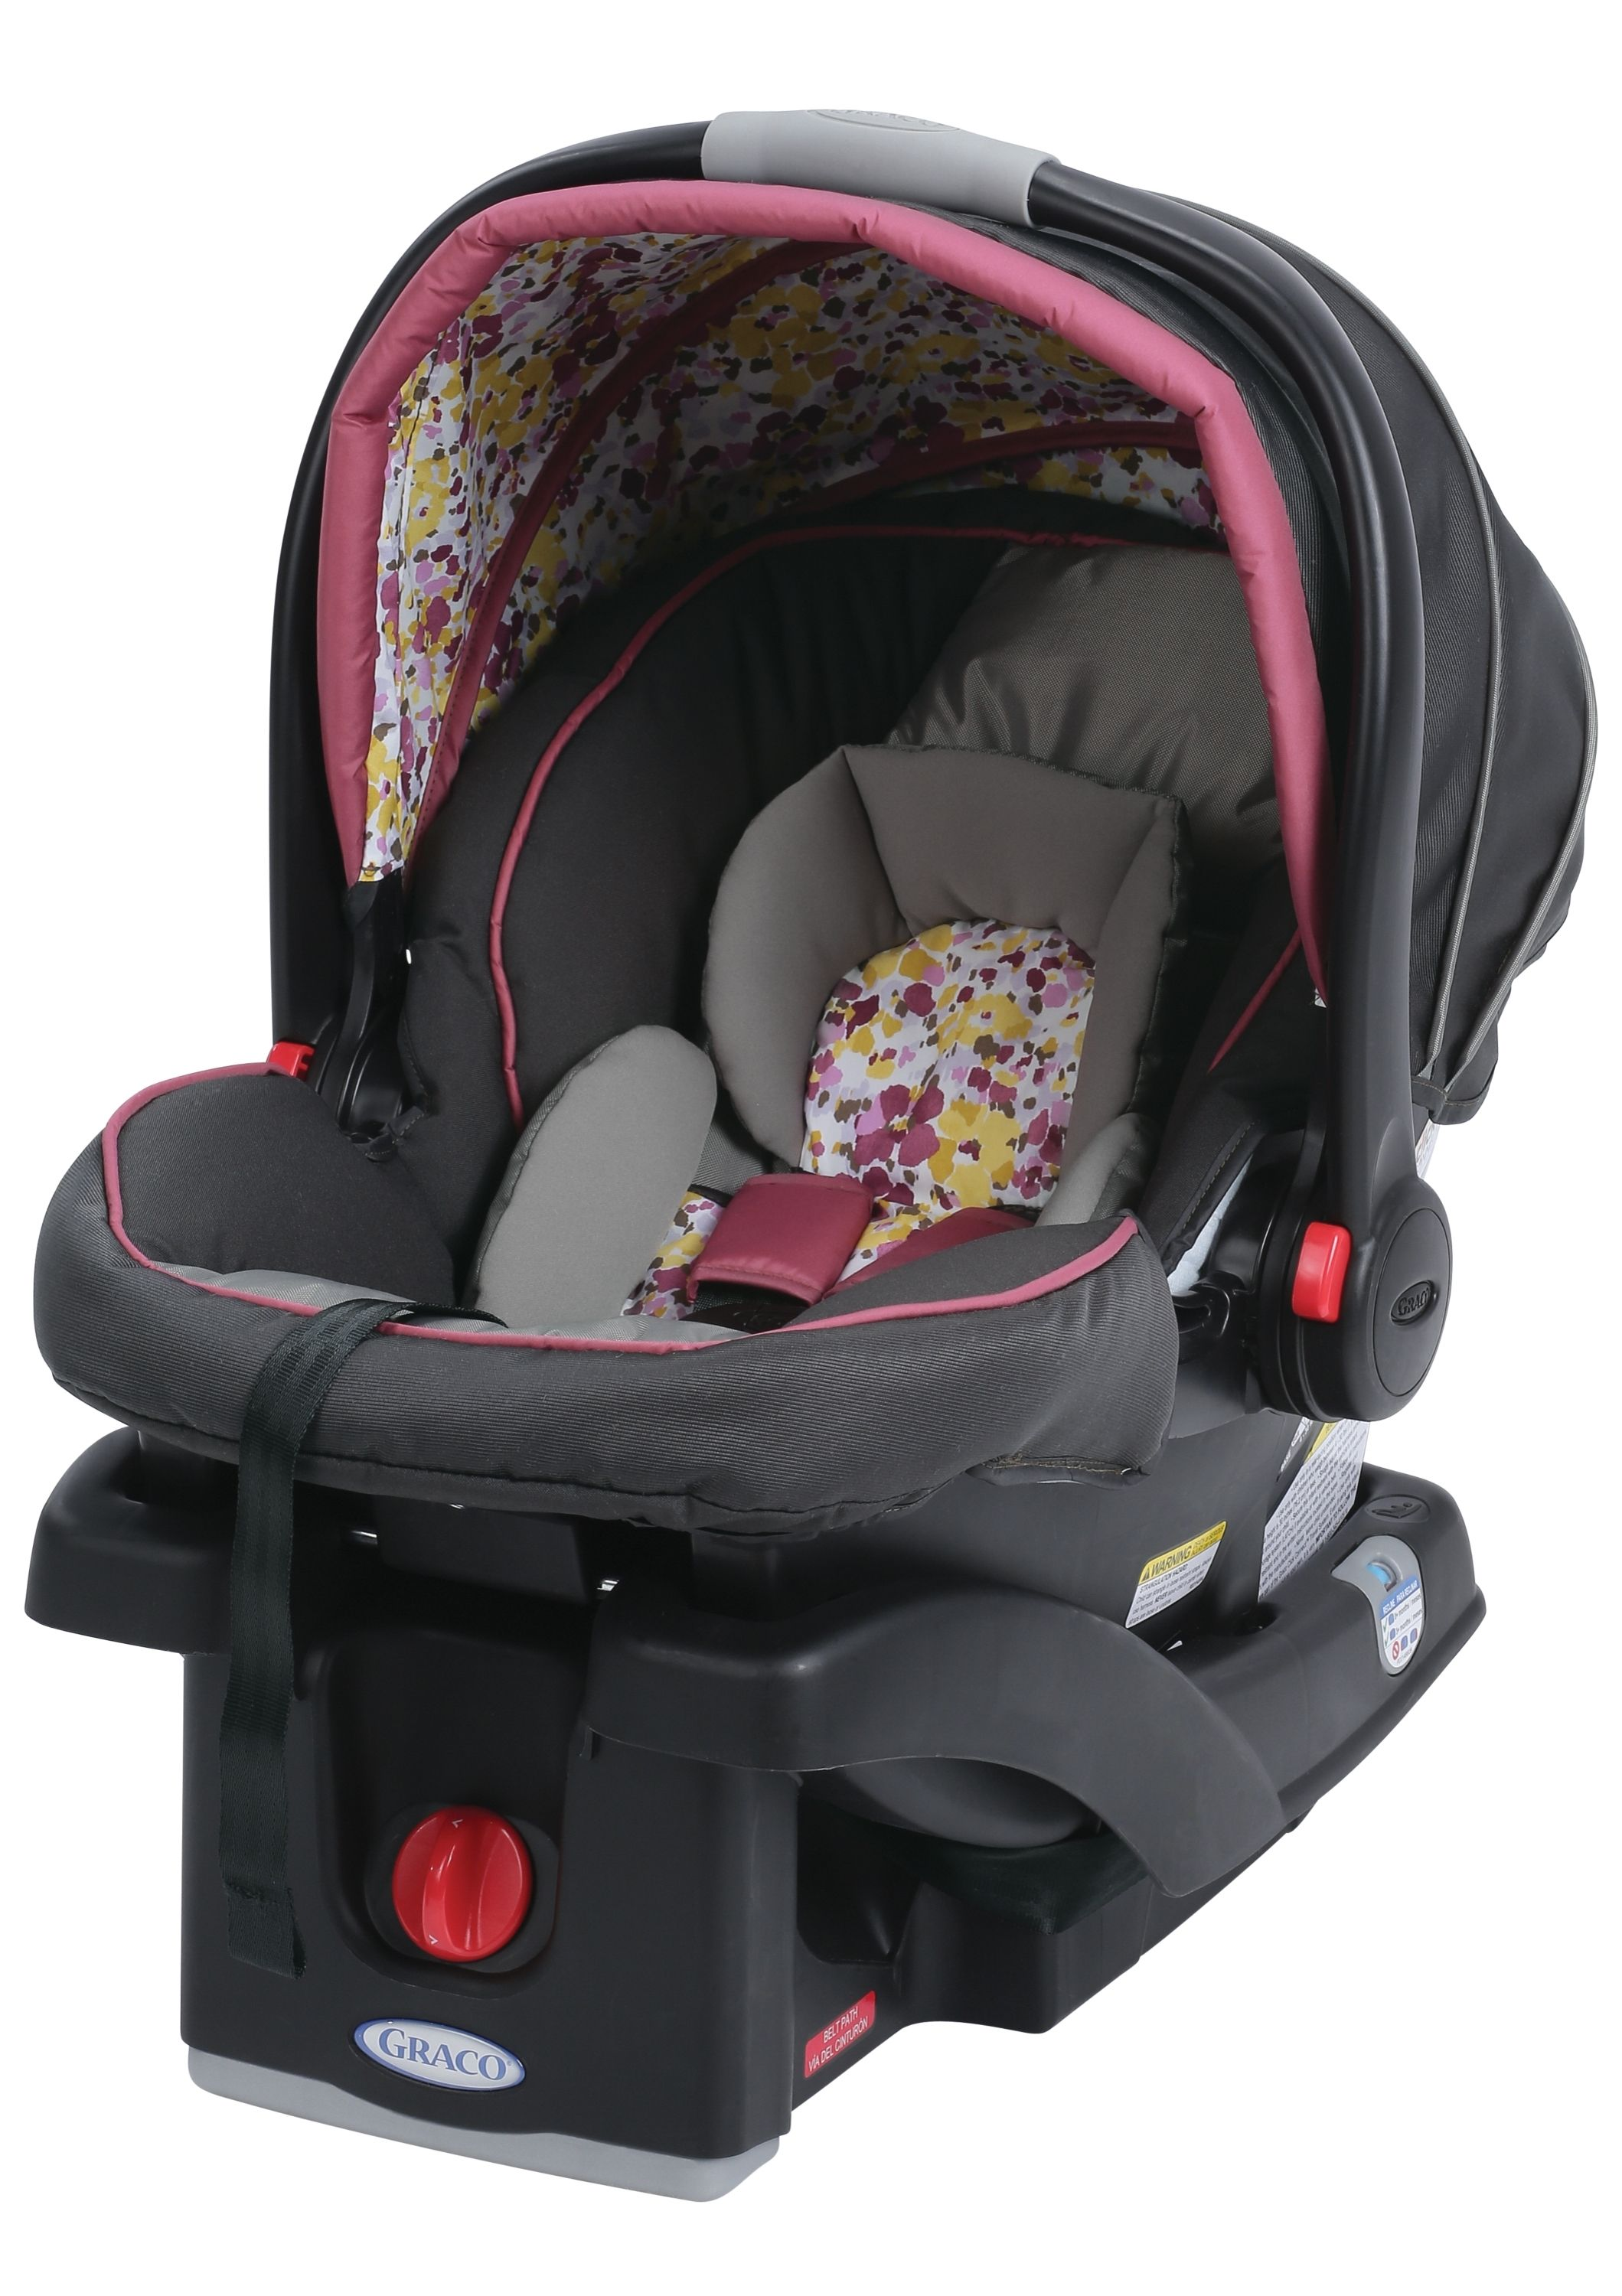 Graco S Snugride 35 Infant Car Seat In Claudia Is An Ultra Lightweight